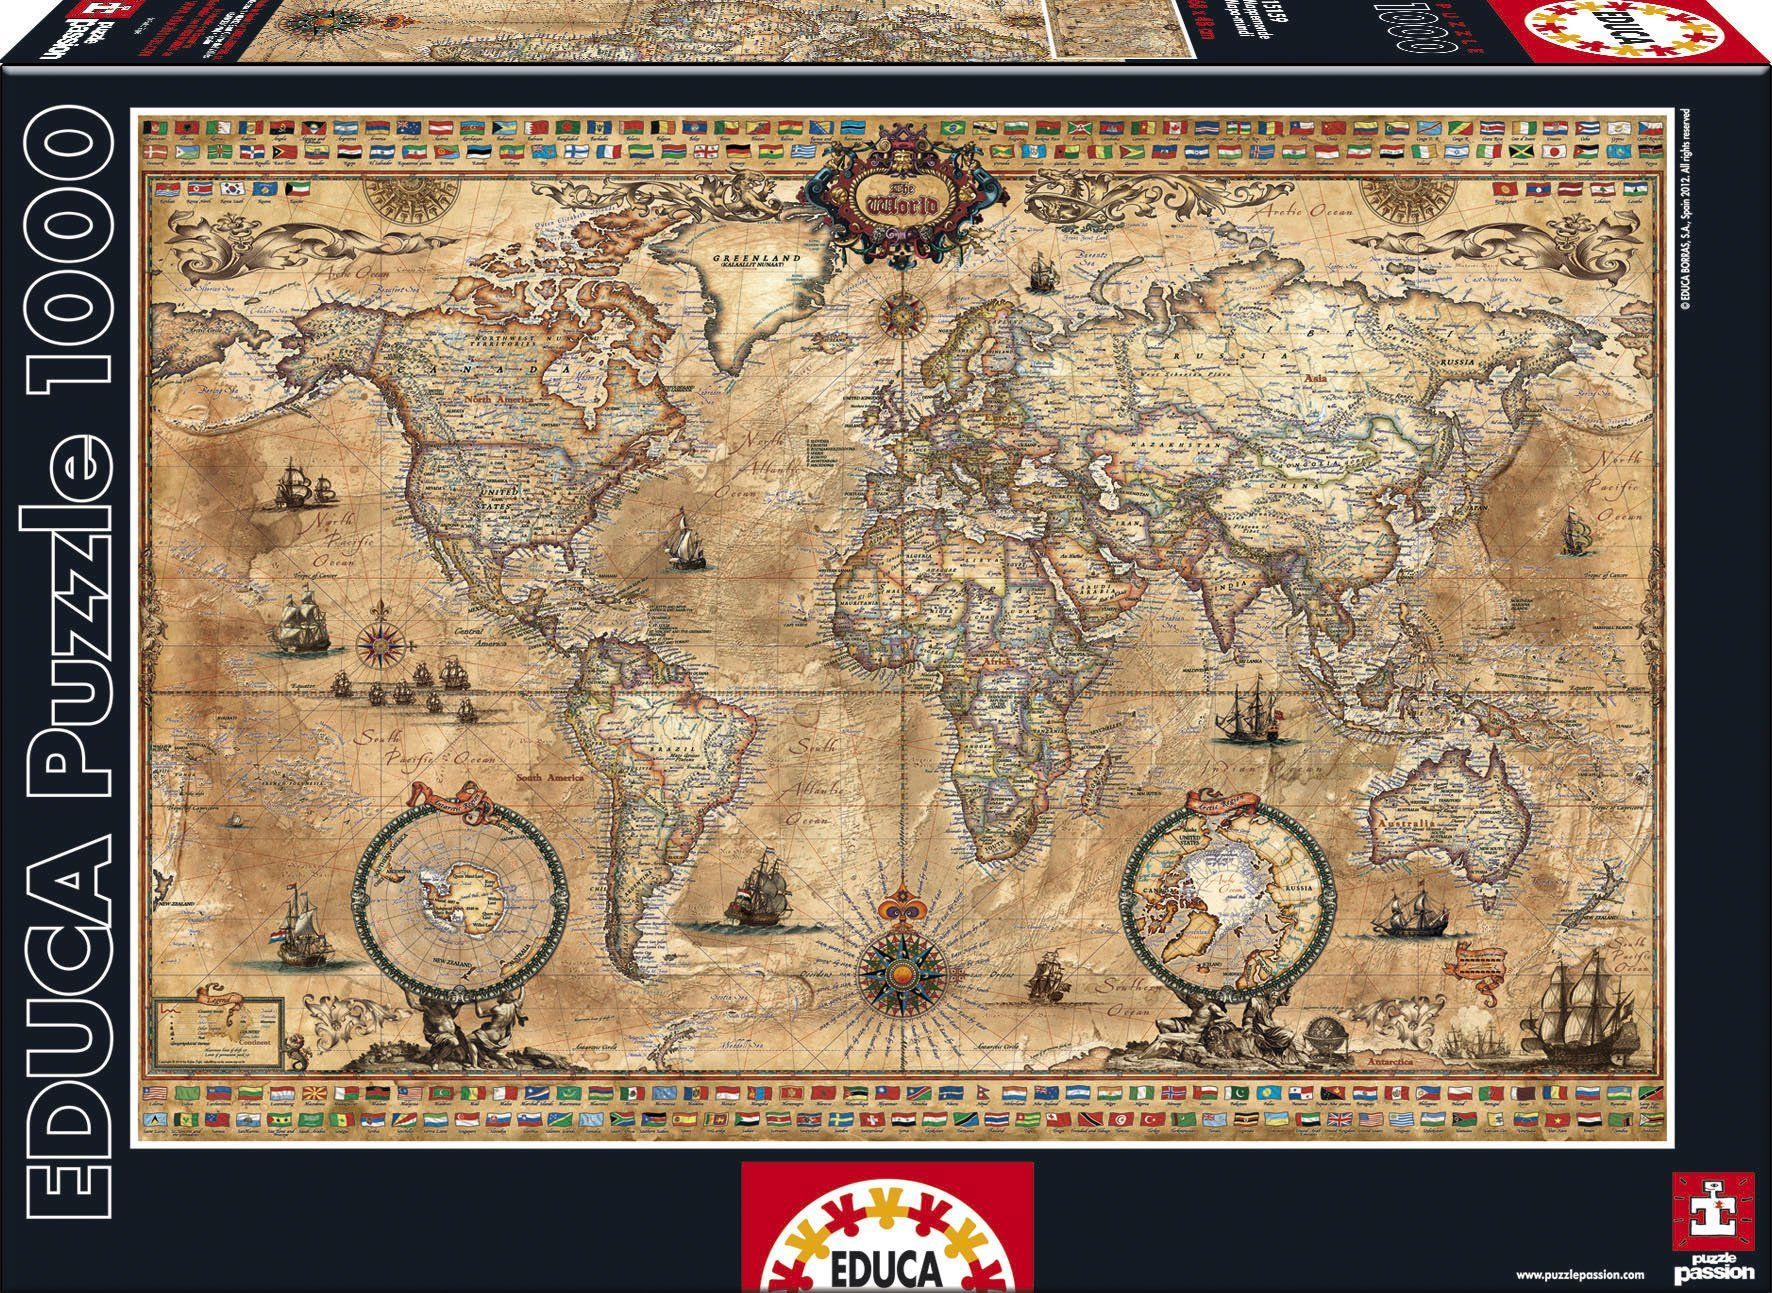 Amazon antique world map 1000 piece puzzle toys games amazon antique world map 1000 piece puzzle educa toys games gumiabroncs Gallery